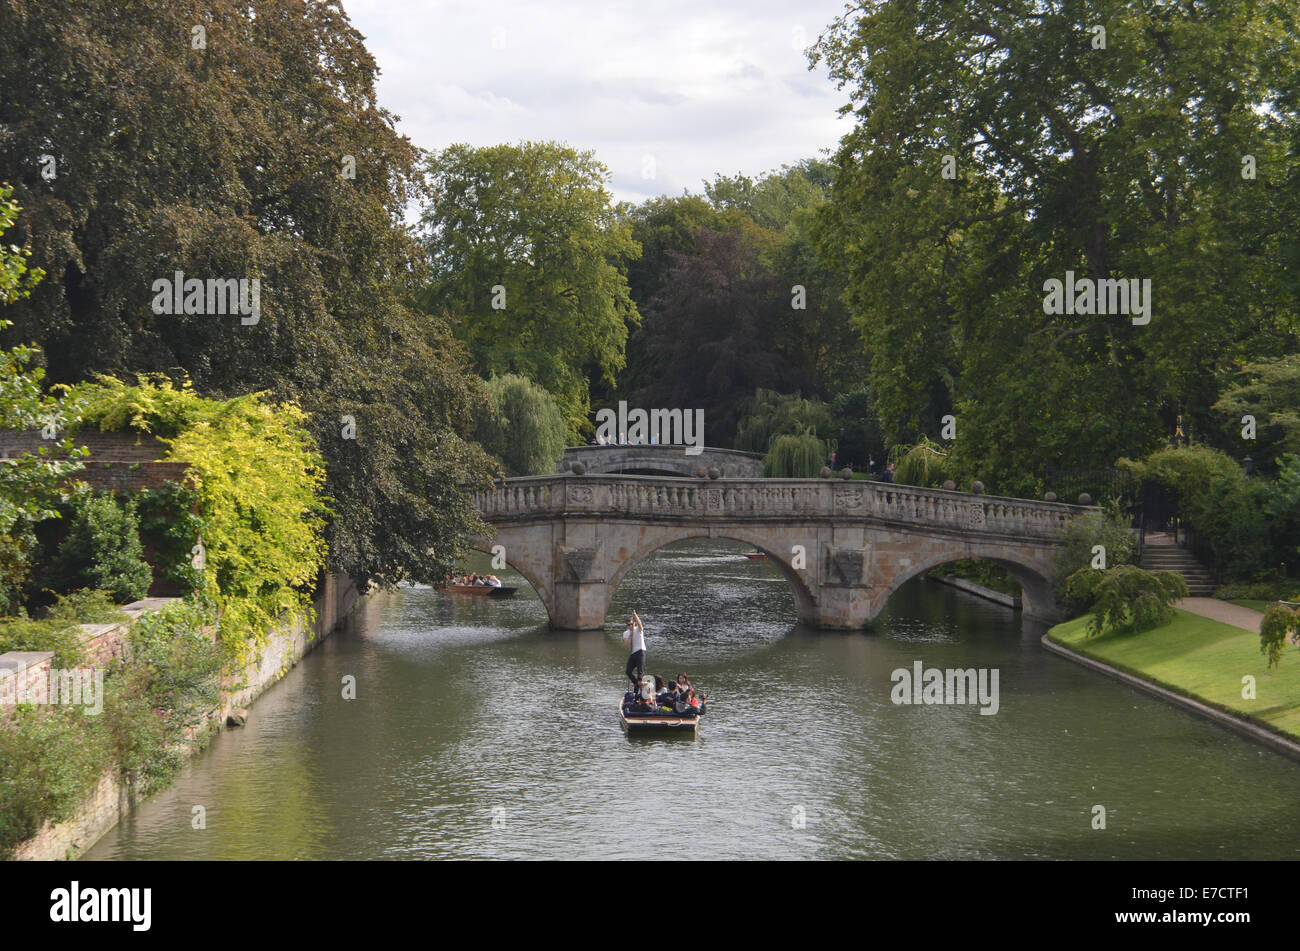 Punting in Cambridge August 2014 UK - Stock Image